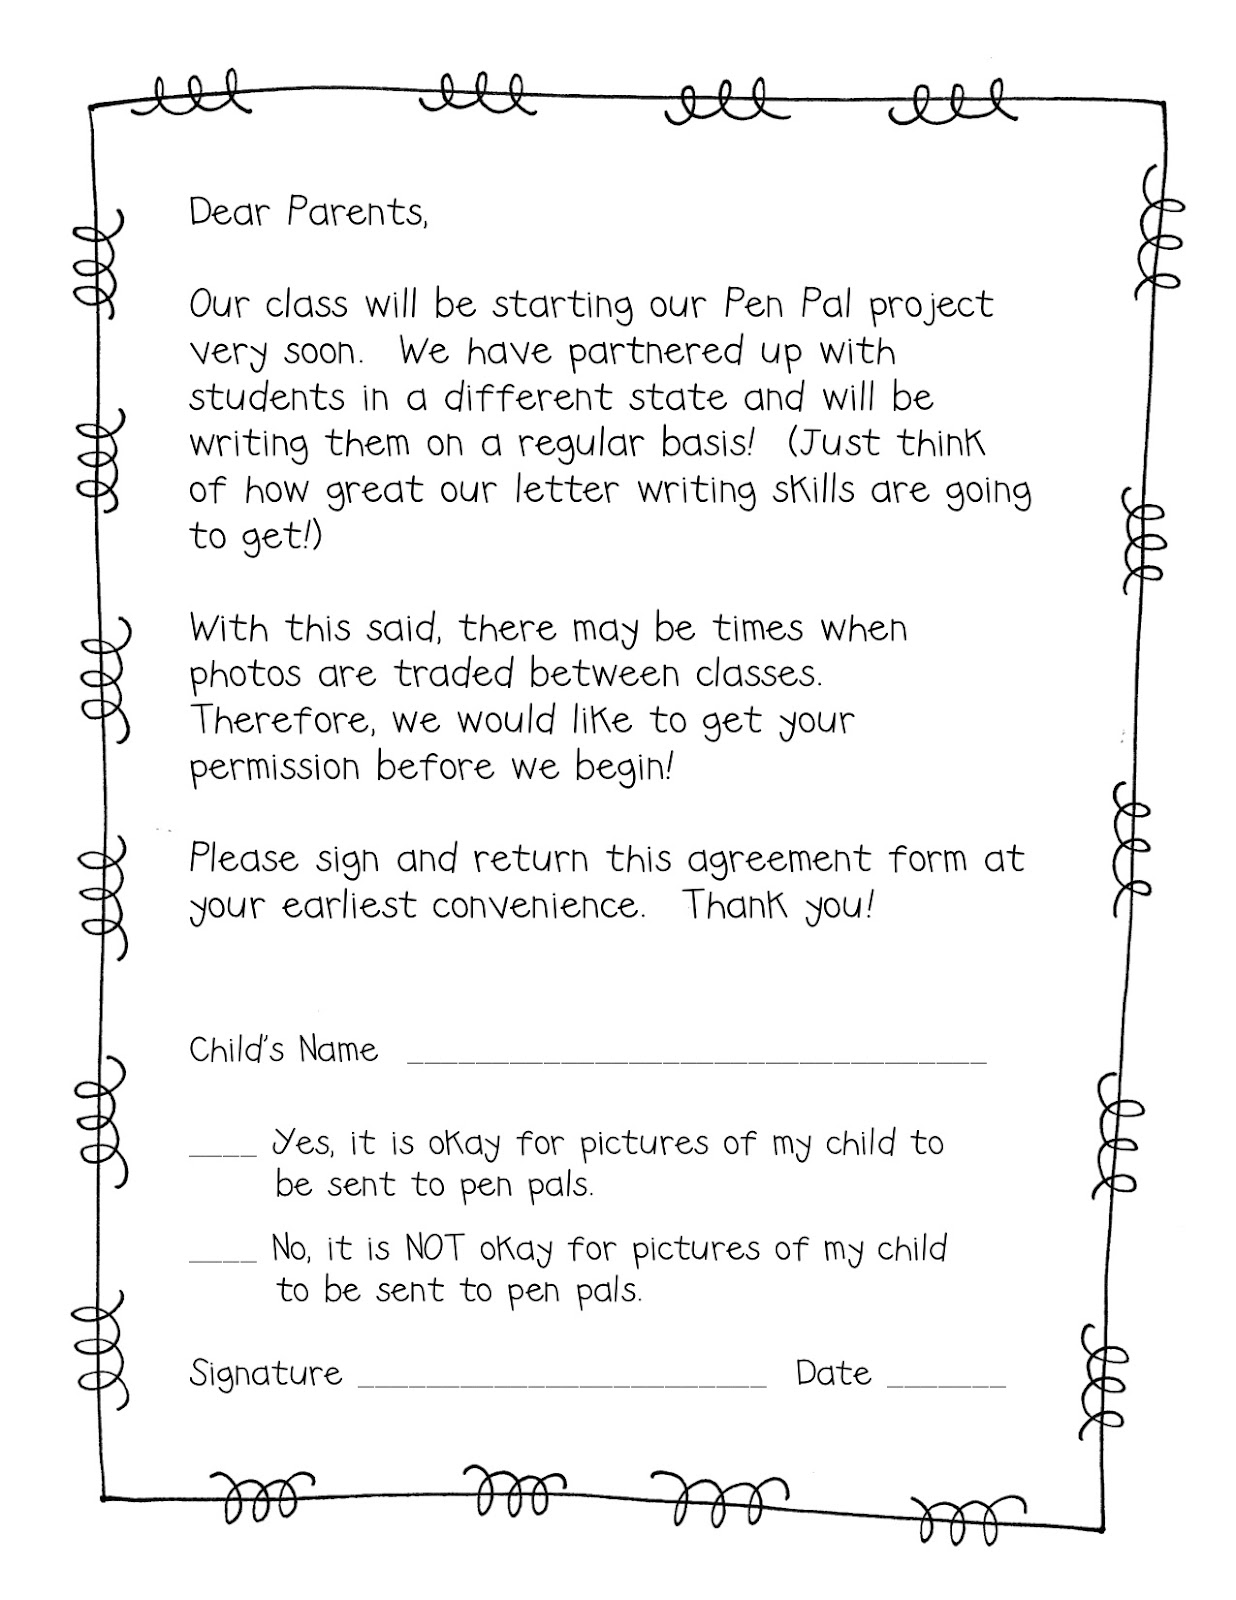 Pen+Pal+Letter_Parents Sending Credit Application Letter on envelope when, post office, post office boxes, clip art,